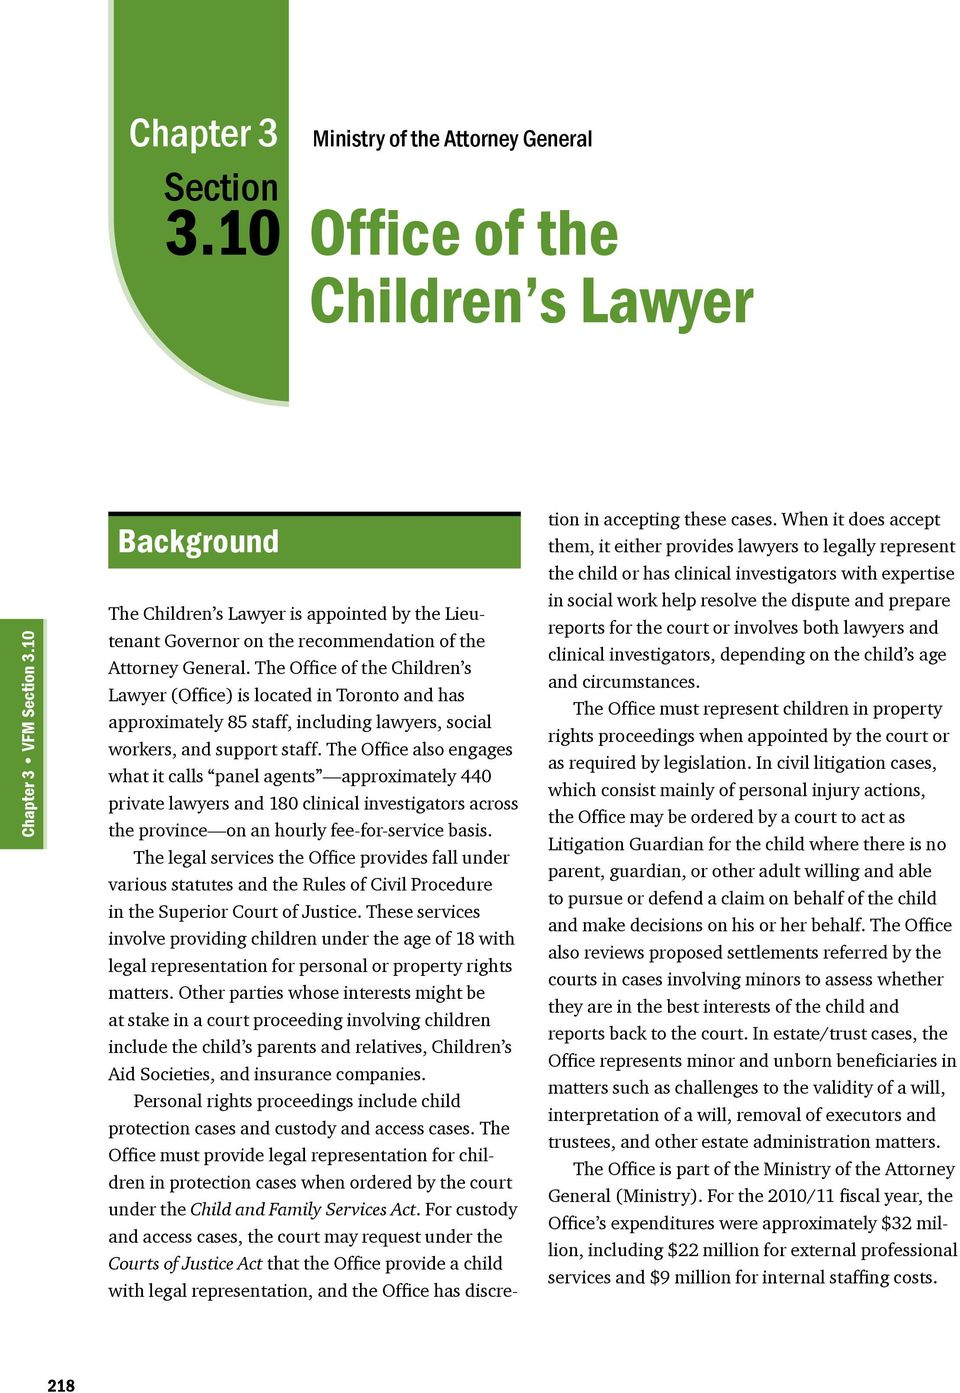 The Office of the Children s Lawyer (Office) is located in Toronto and has approximately 85 staff, including lawyers, social workers, and support staff.